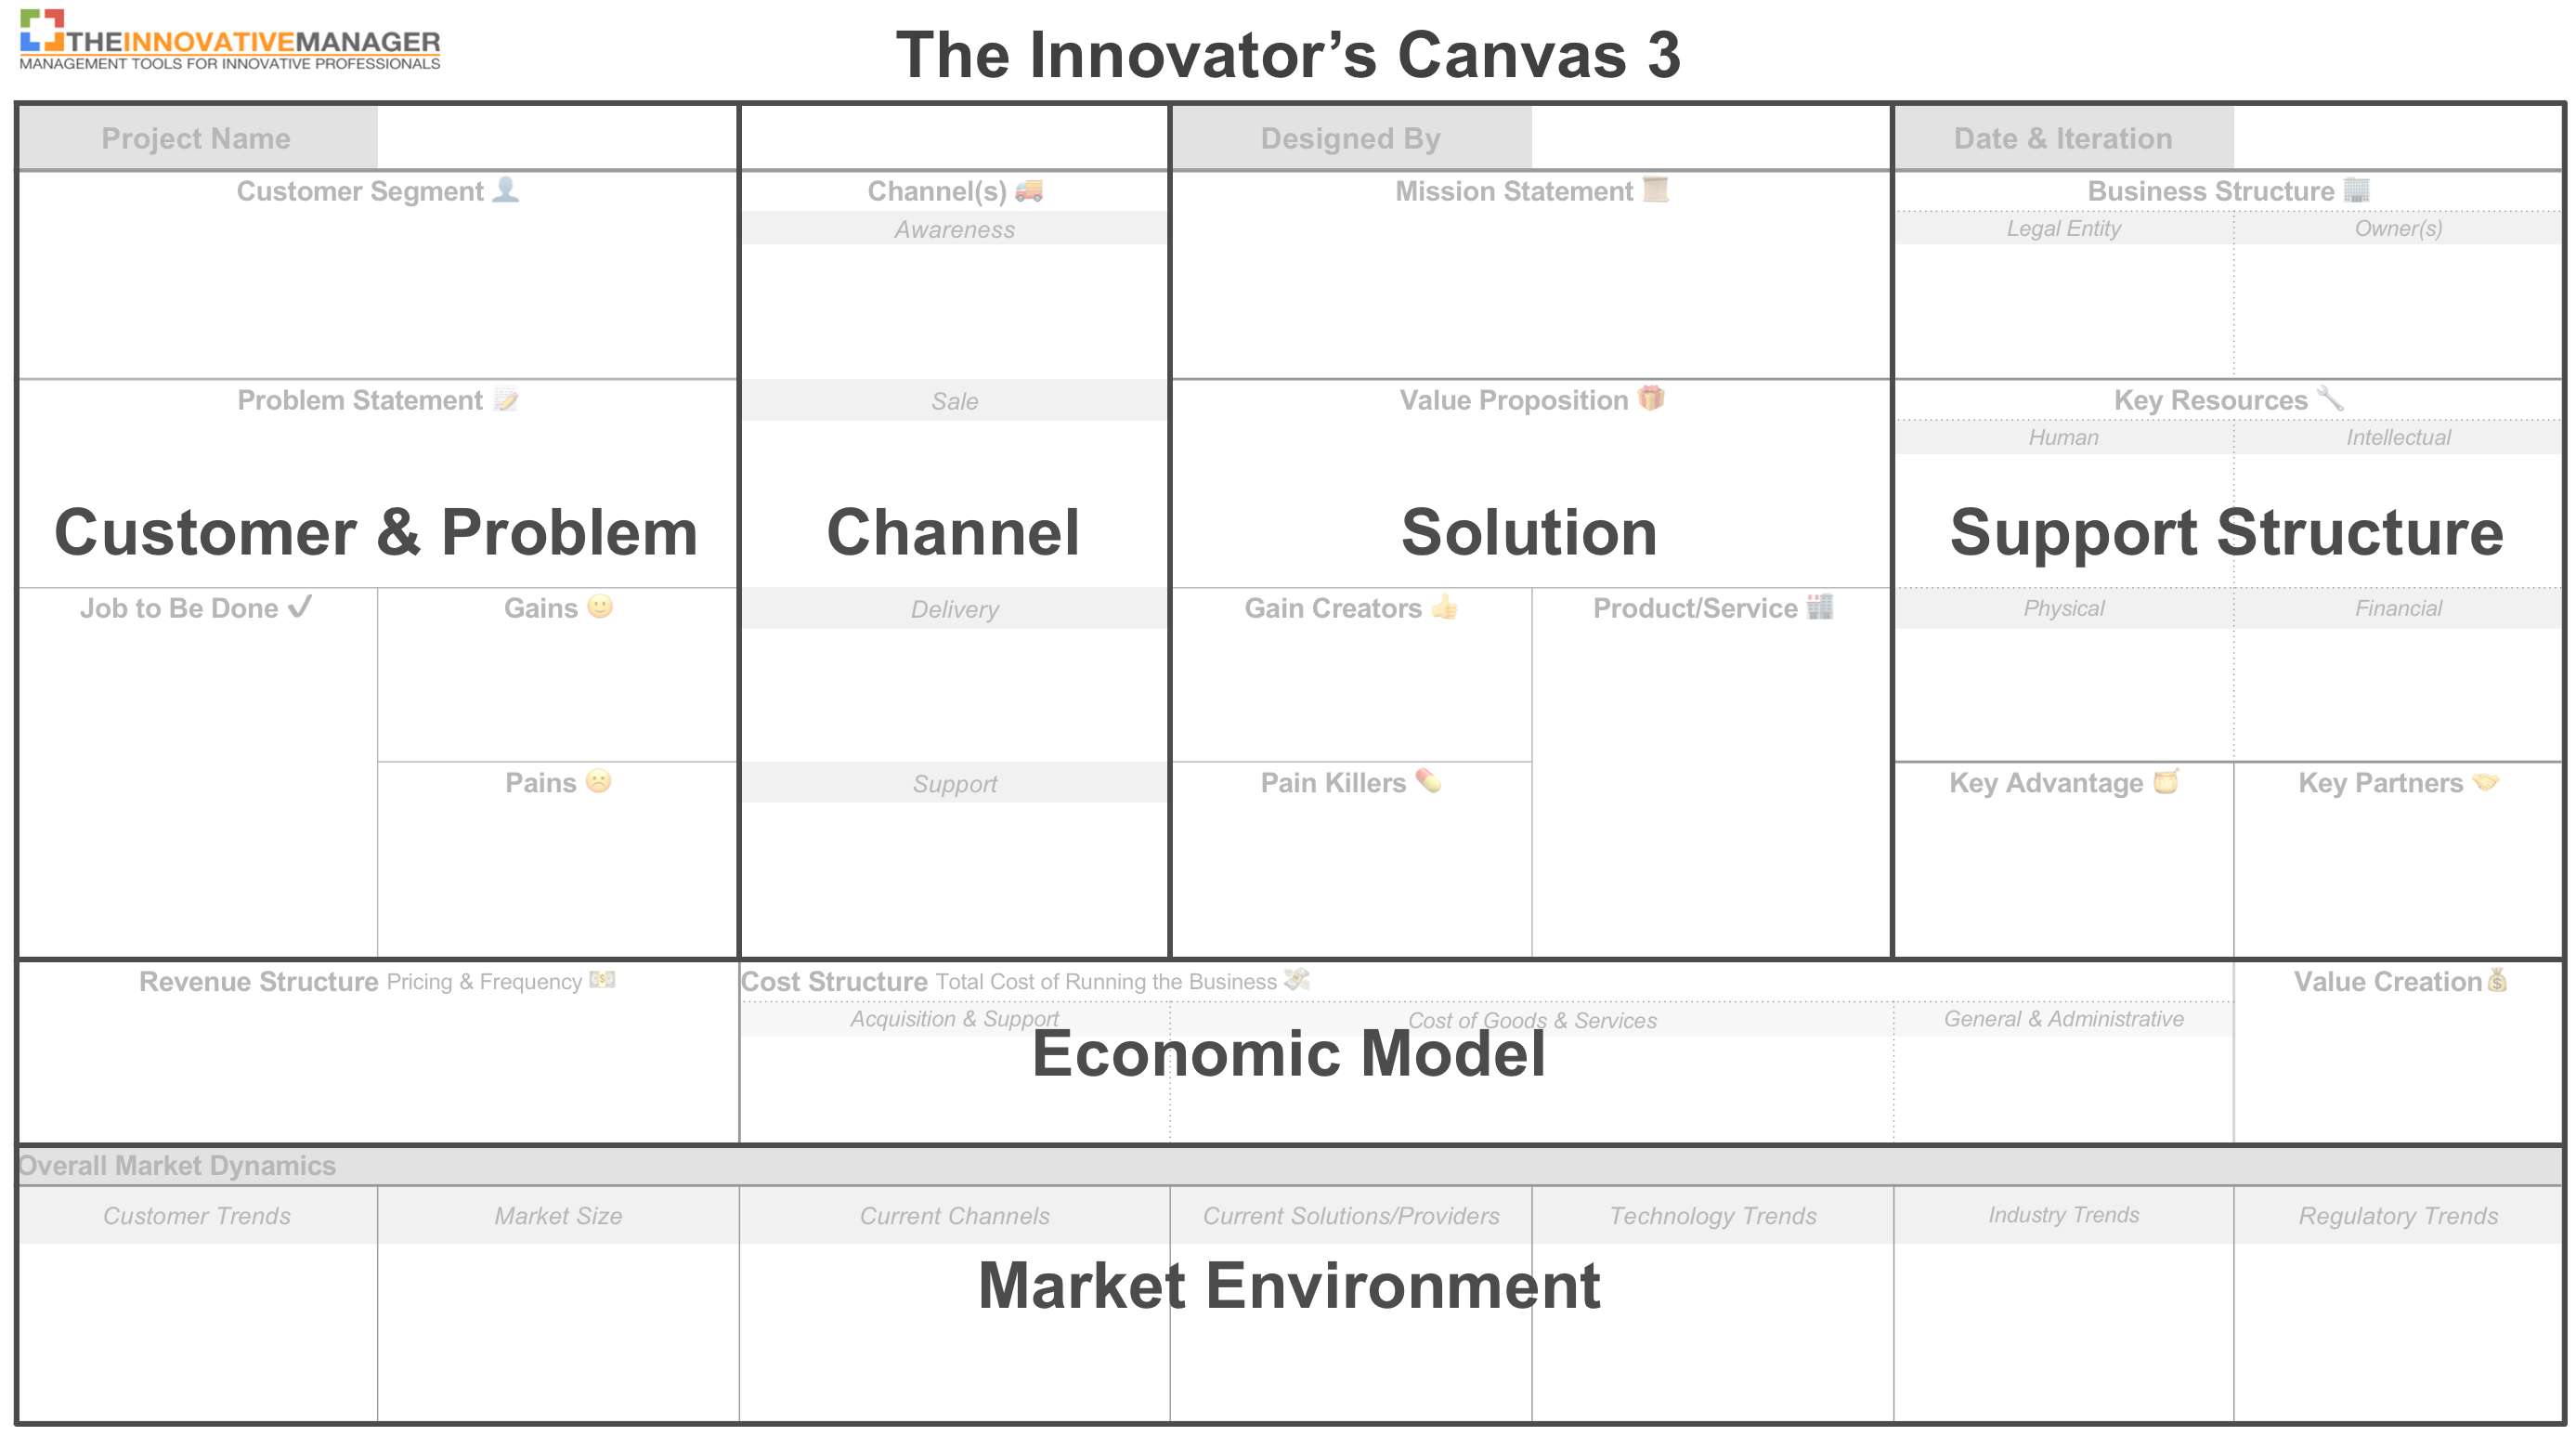 Innovators Canvas 3 Image